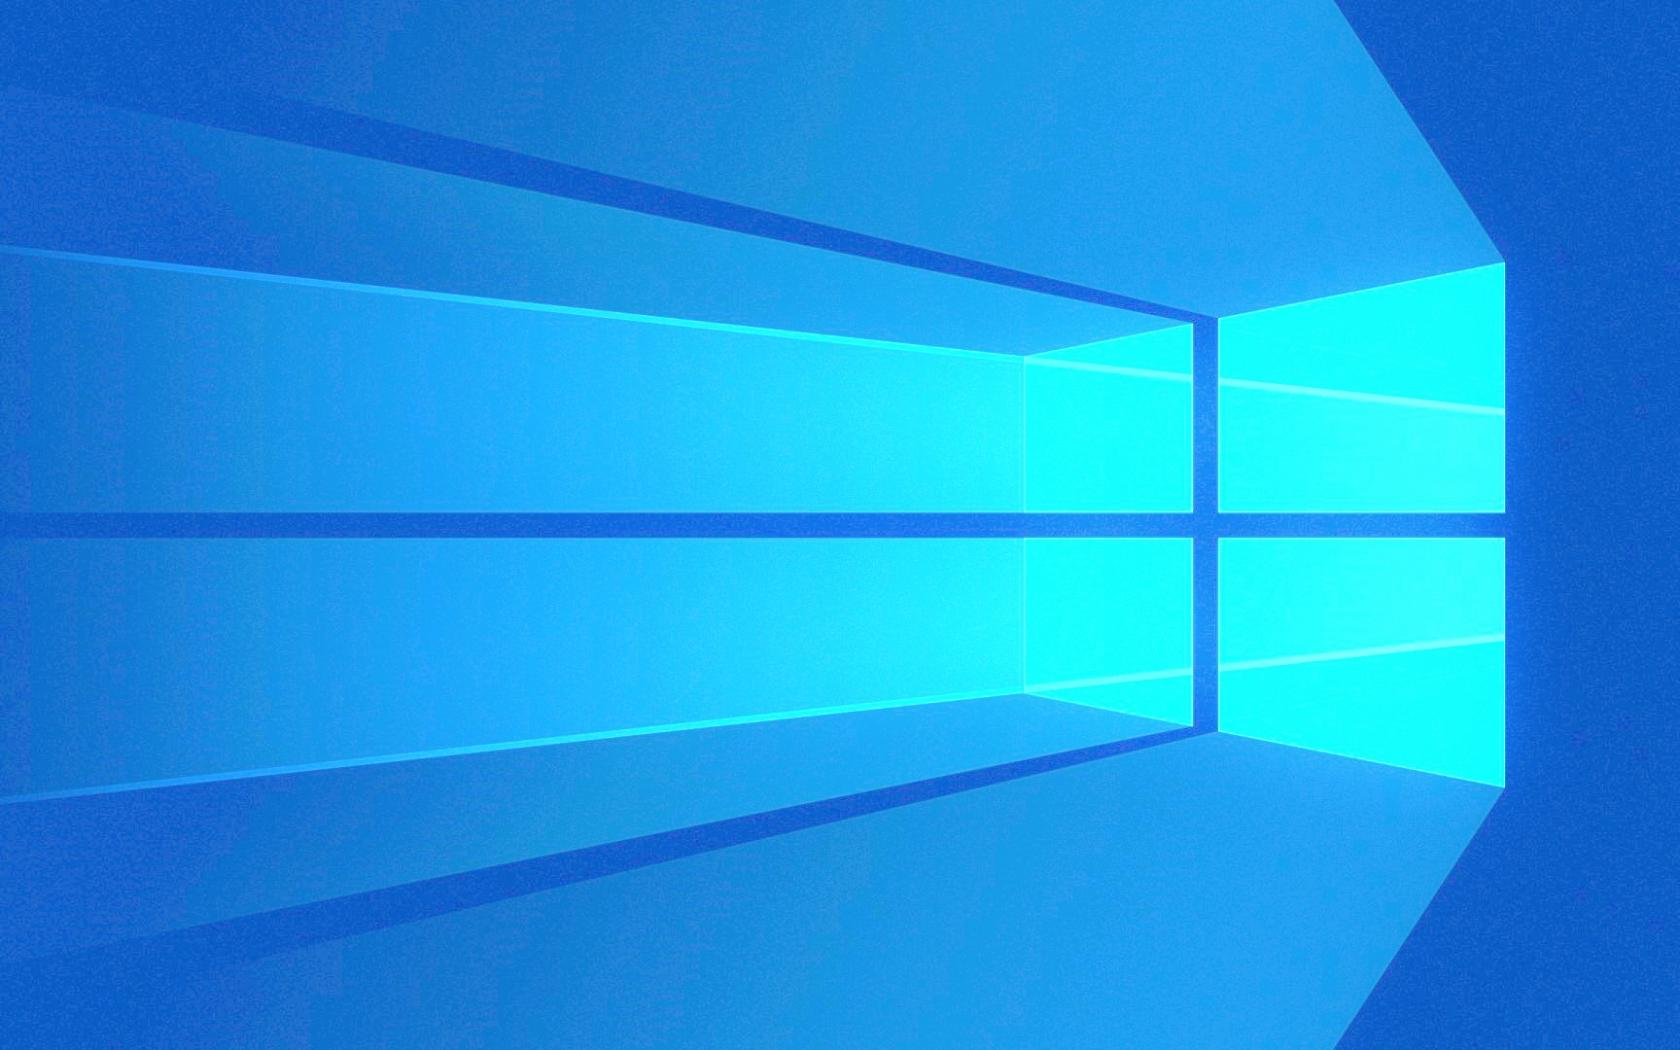 blue-windows-10-logo-wallpaper-1680x1050